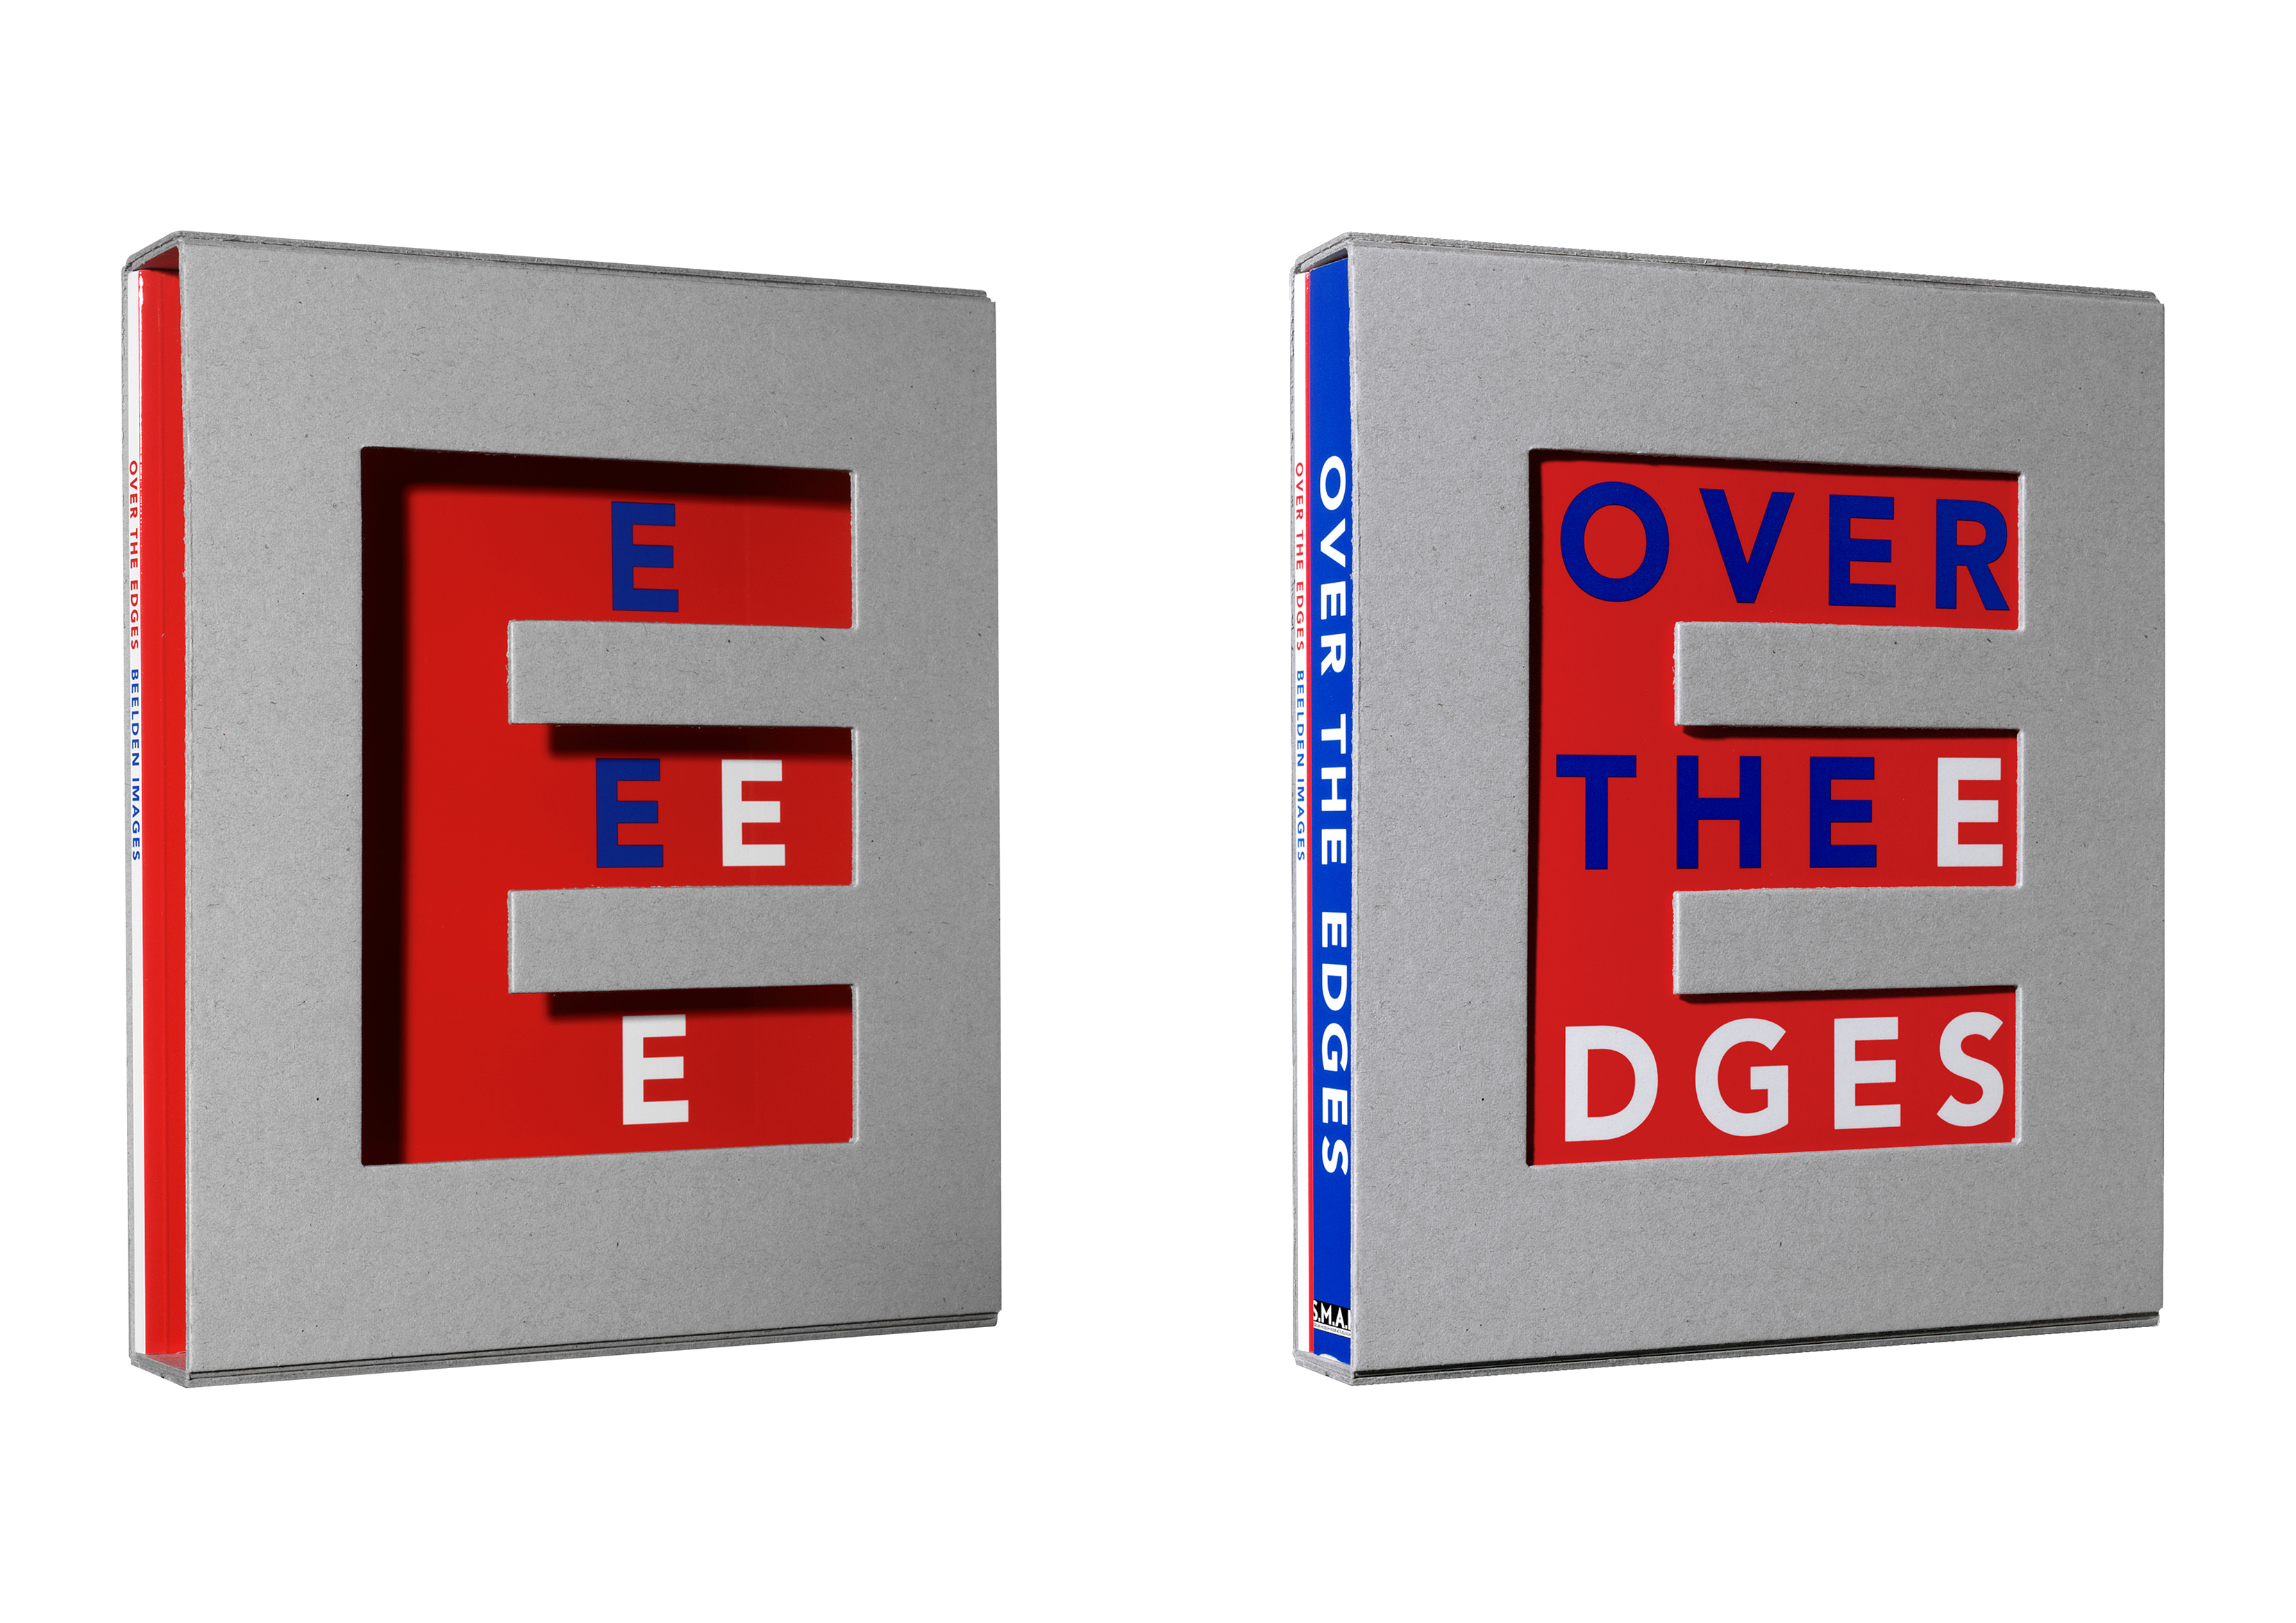 Over the Edges catalogue